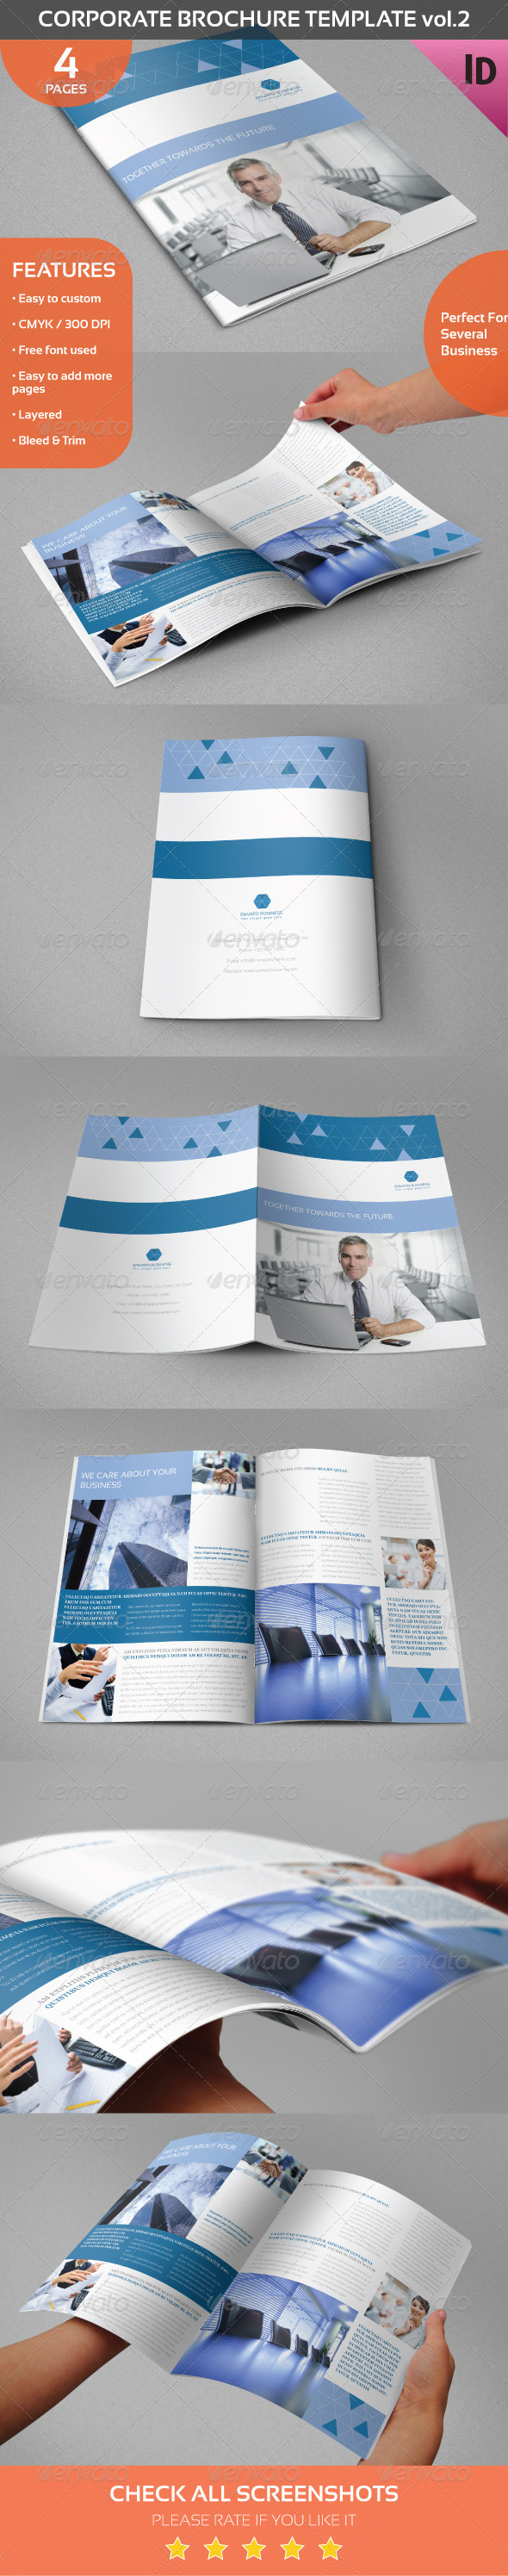 Corporate Brochure Template vol.2